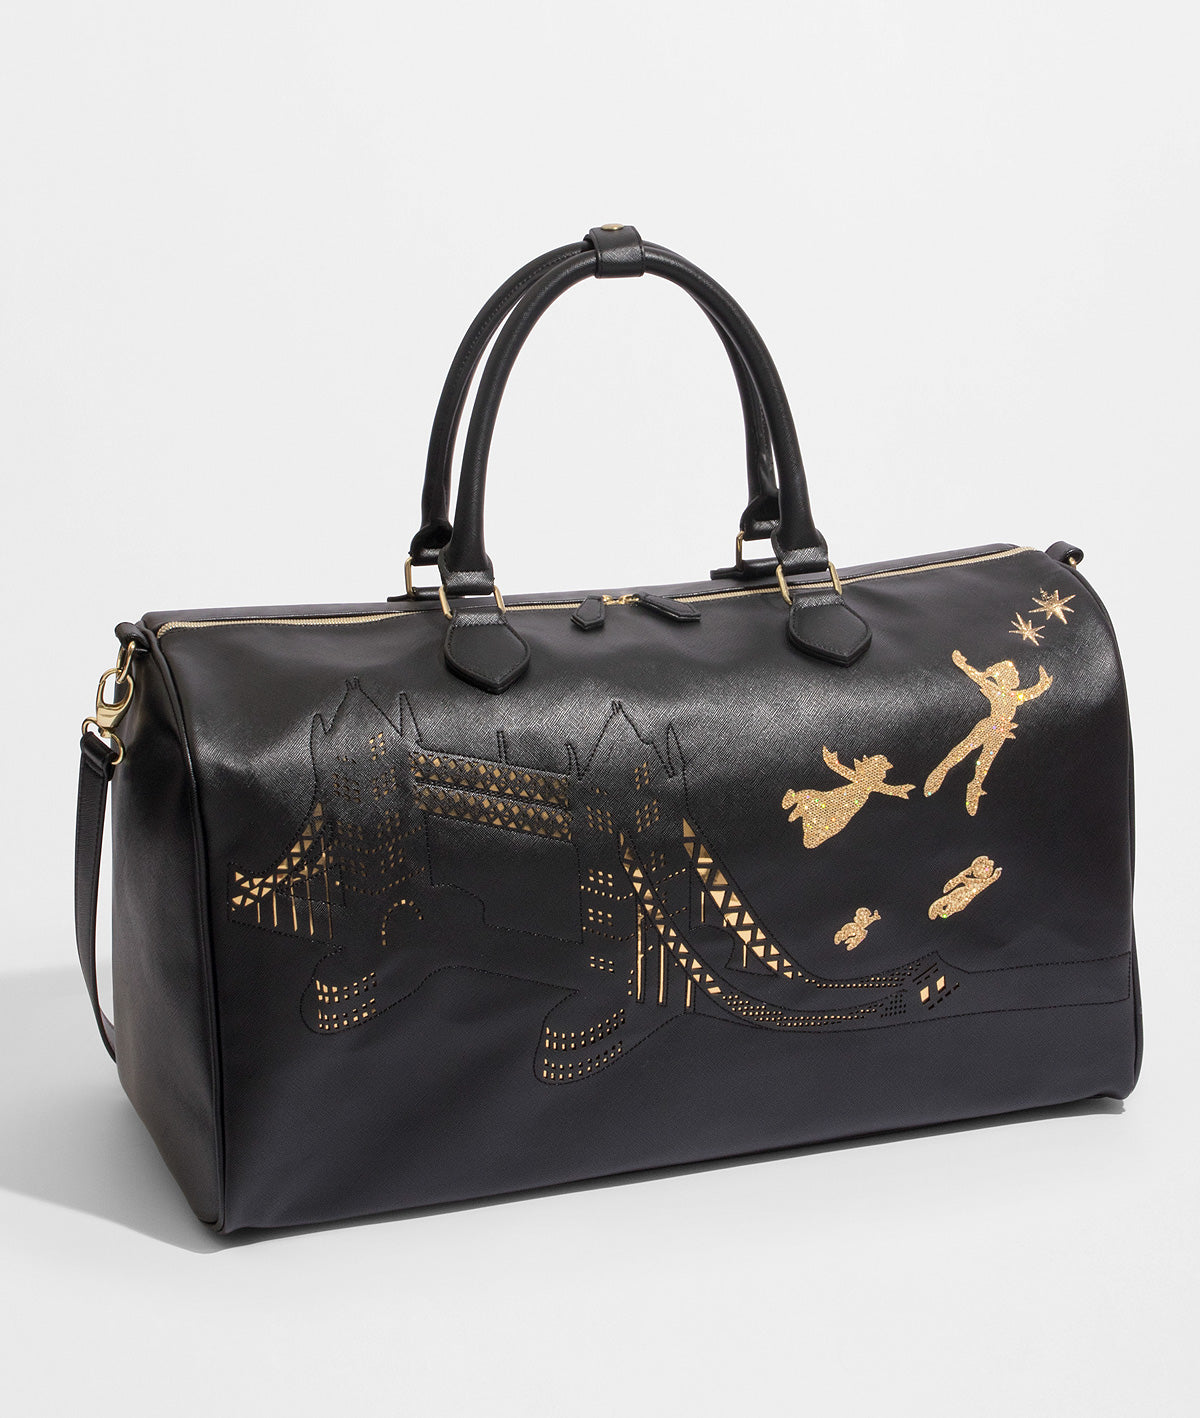 Peter Pan Travel Bag